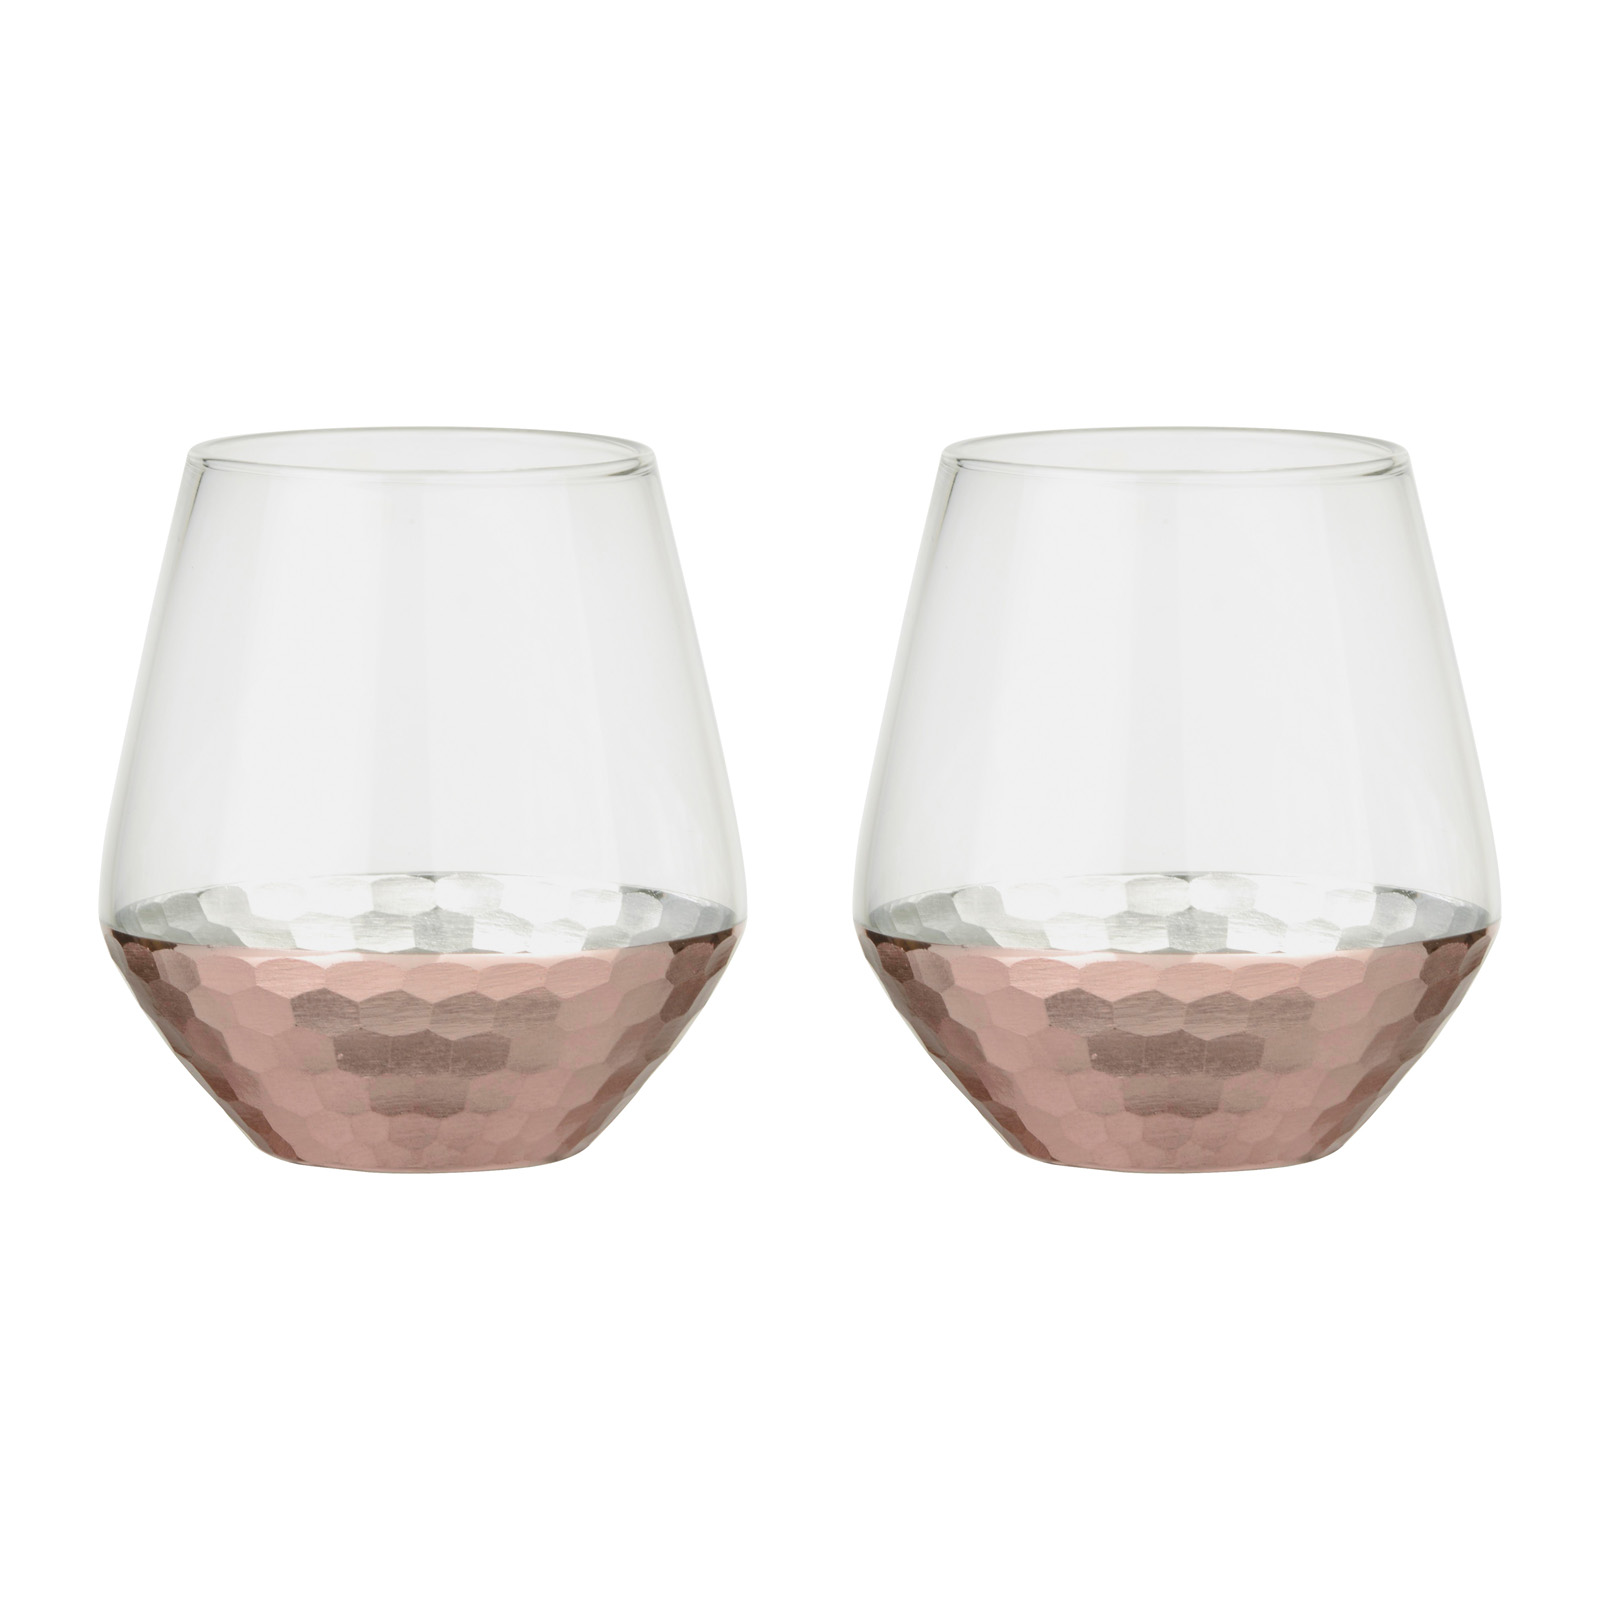 Set of 2 Coppertino DOF Tumblers by Artland